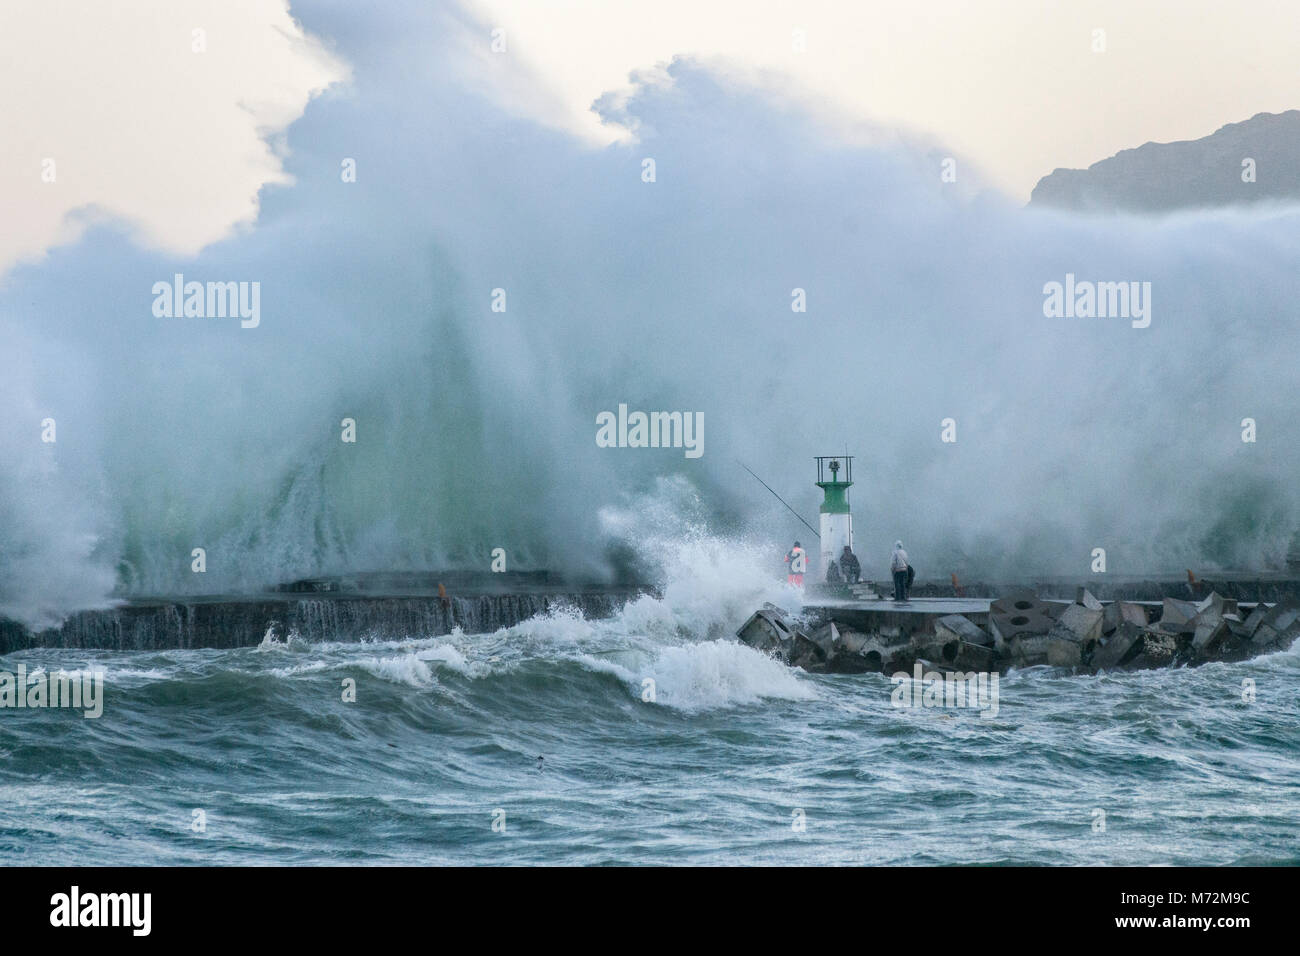 Fishermen braving enormous waves that are seen here crashing up against the breakwater of Kalk Bay harbour in Cape Town, South Africa. Stock Photo